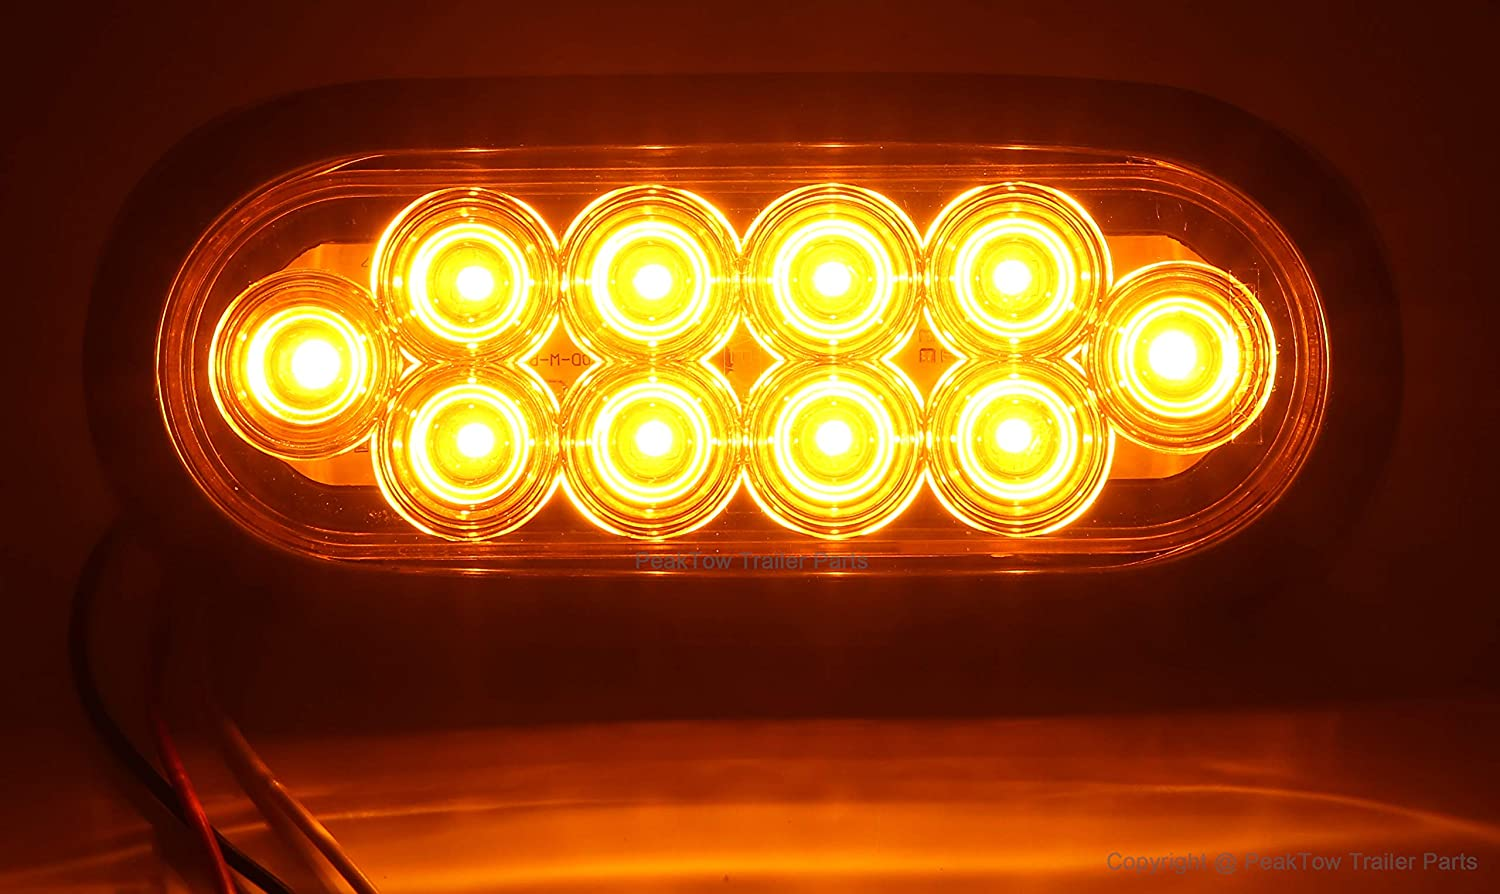 PEAKTOW PTL0432 Oval 6 Inches Amber LED Submersible Stop//Turn//Tail Trailer Truck RV Lights Including Grommets and Plugs Pack of 2